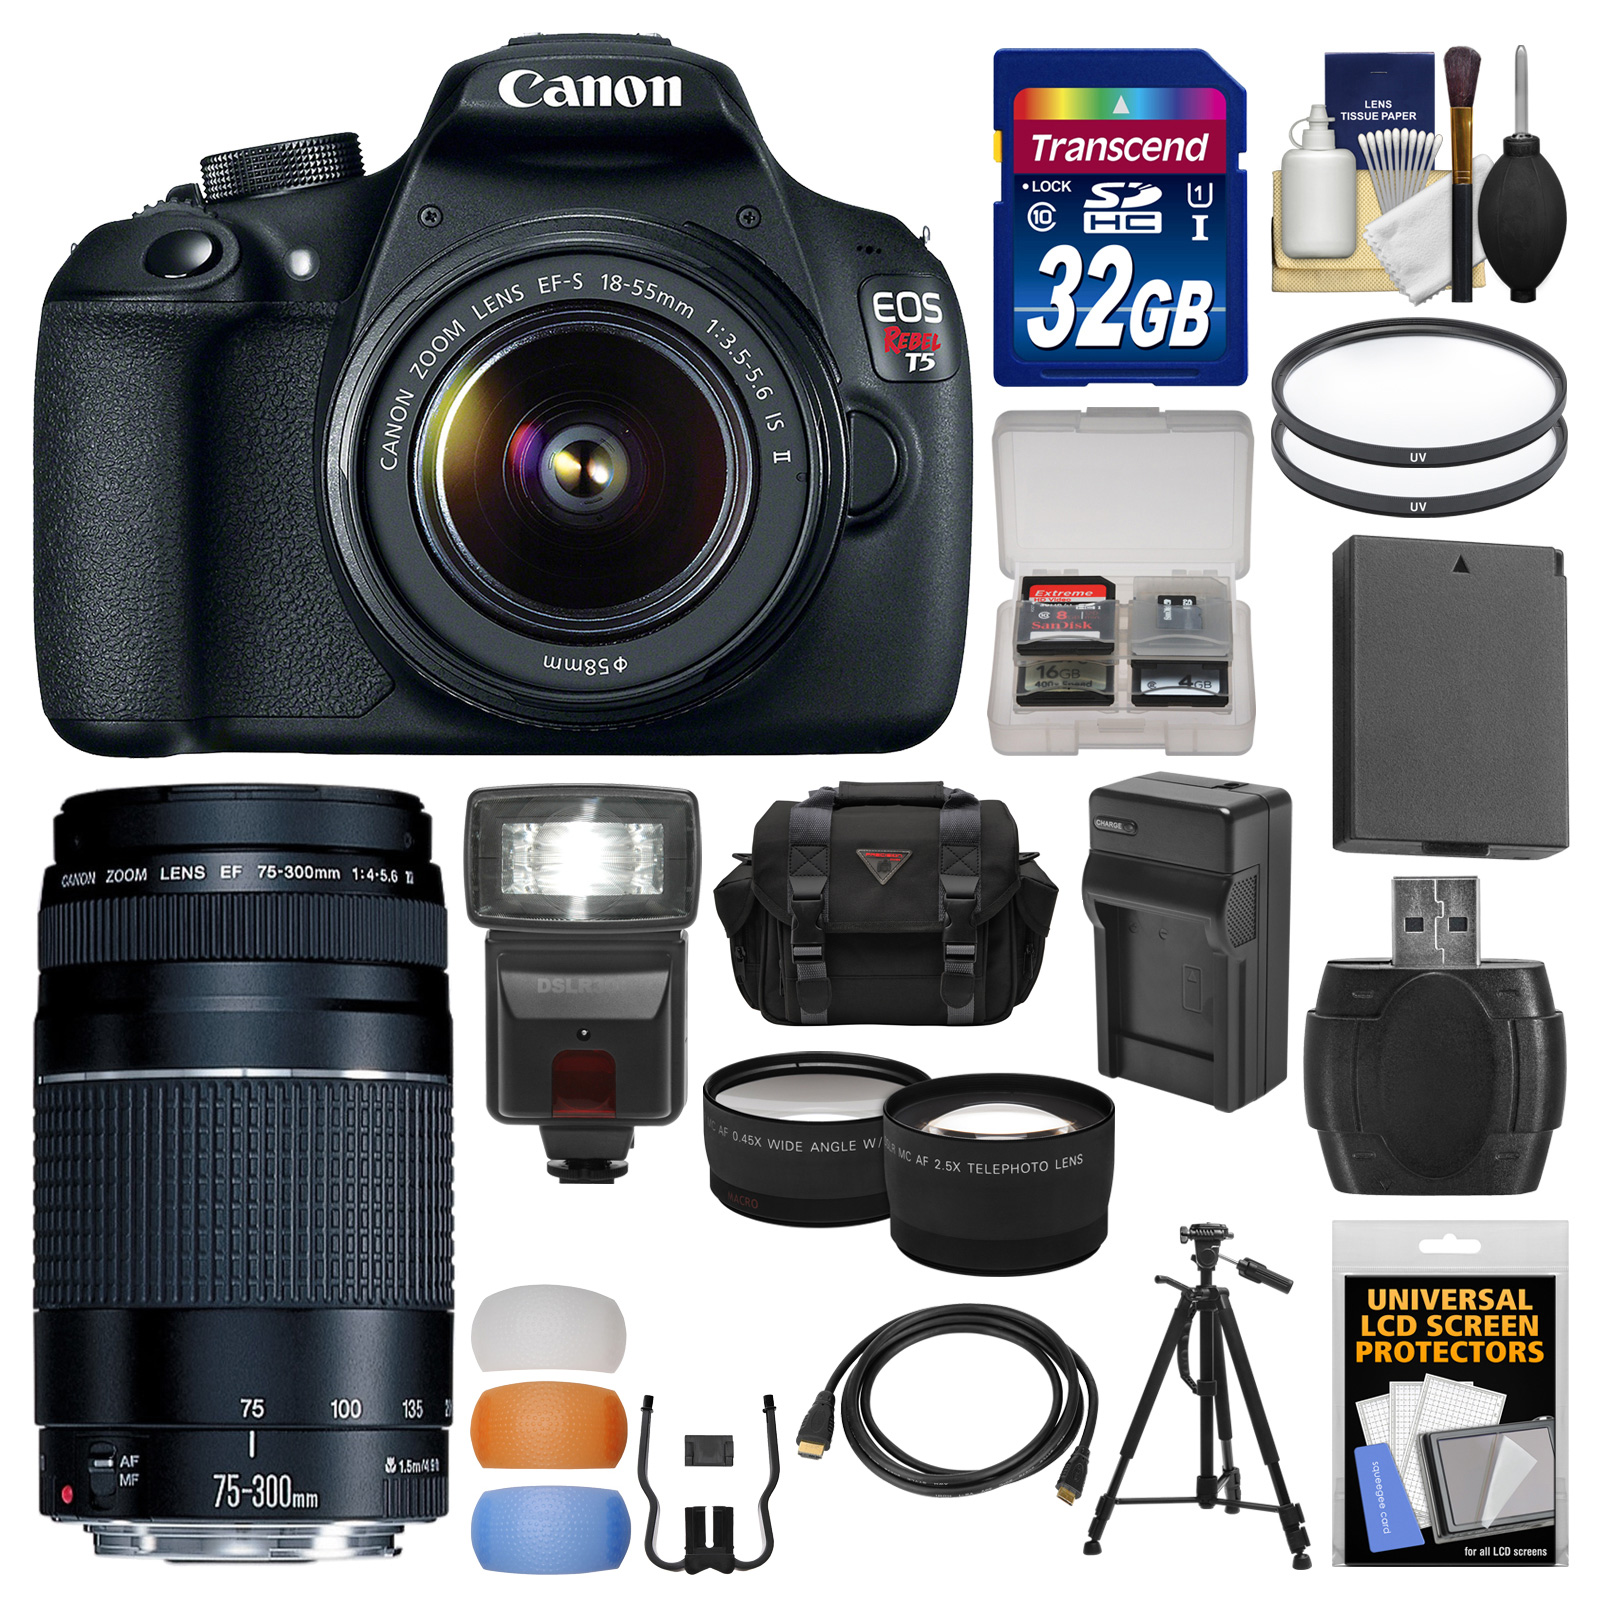 Canon EOS Rebel T5 Digital SLR Camera Body & EF-S 18-55mm IS II with 75-300mm III Lens + 32GB Card + Case + Flash + Battery + Tripod + Kit